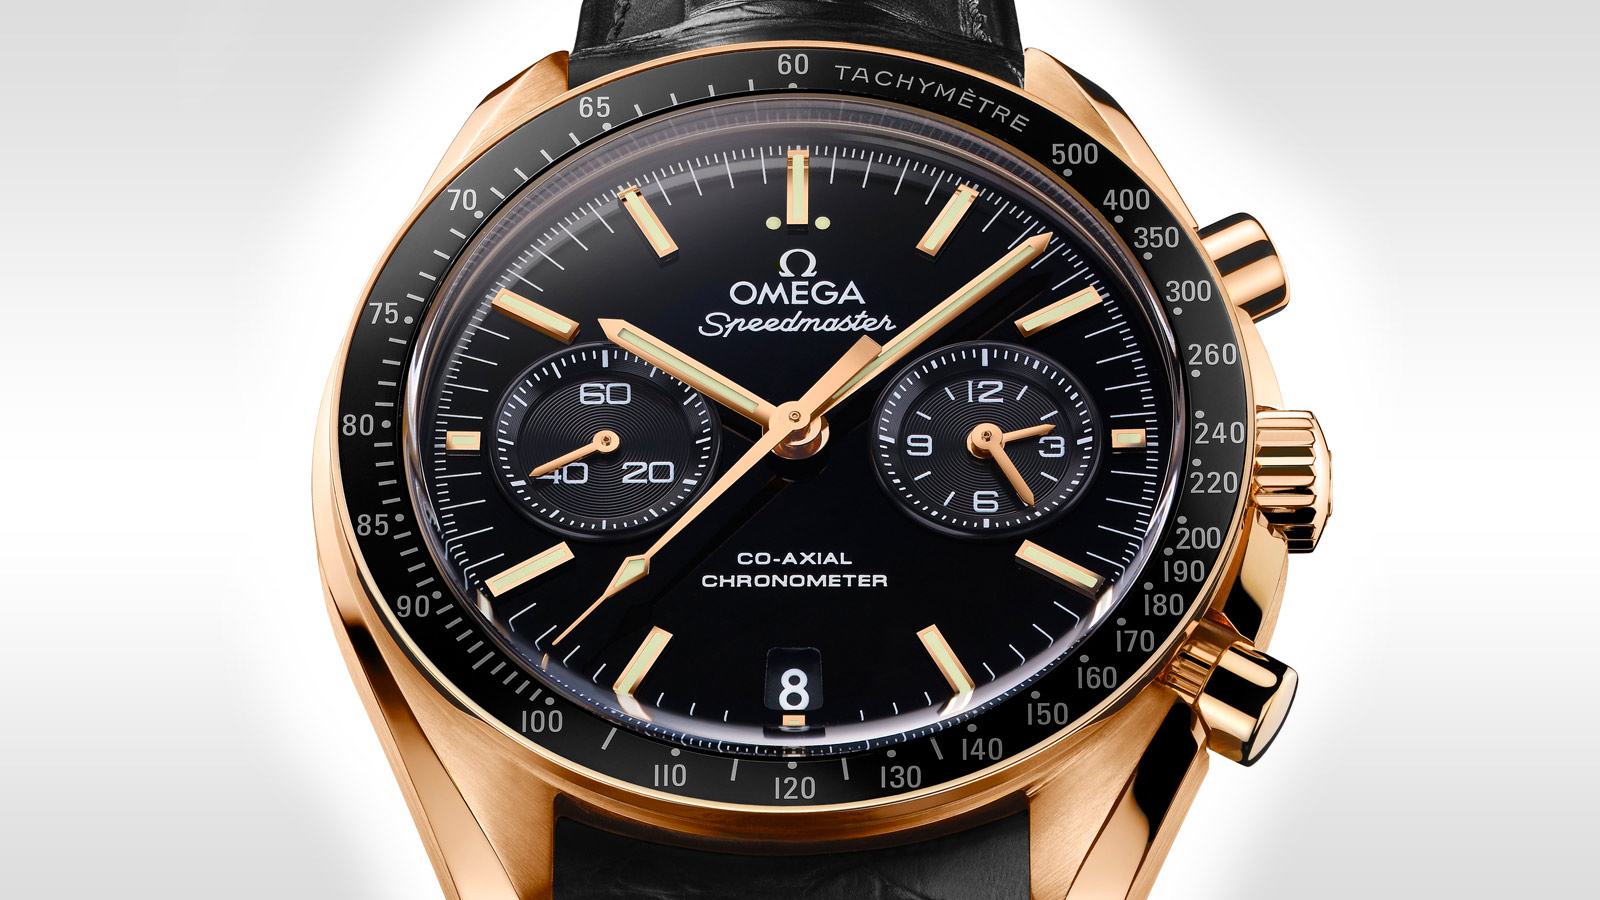 Speedmaster ムーンウォッチ Moonwatch Omega Co‑Axial Chronograph 44.25 mm - 311.63.44.51.01.001 - ビュー 1